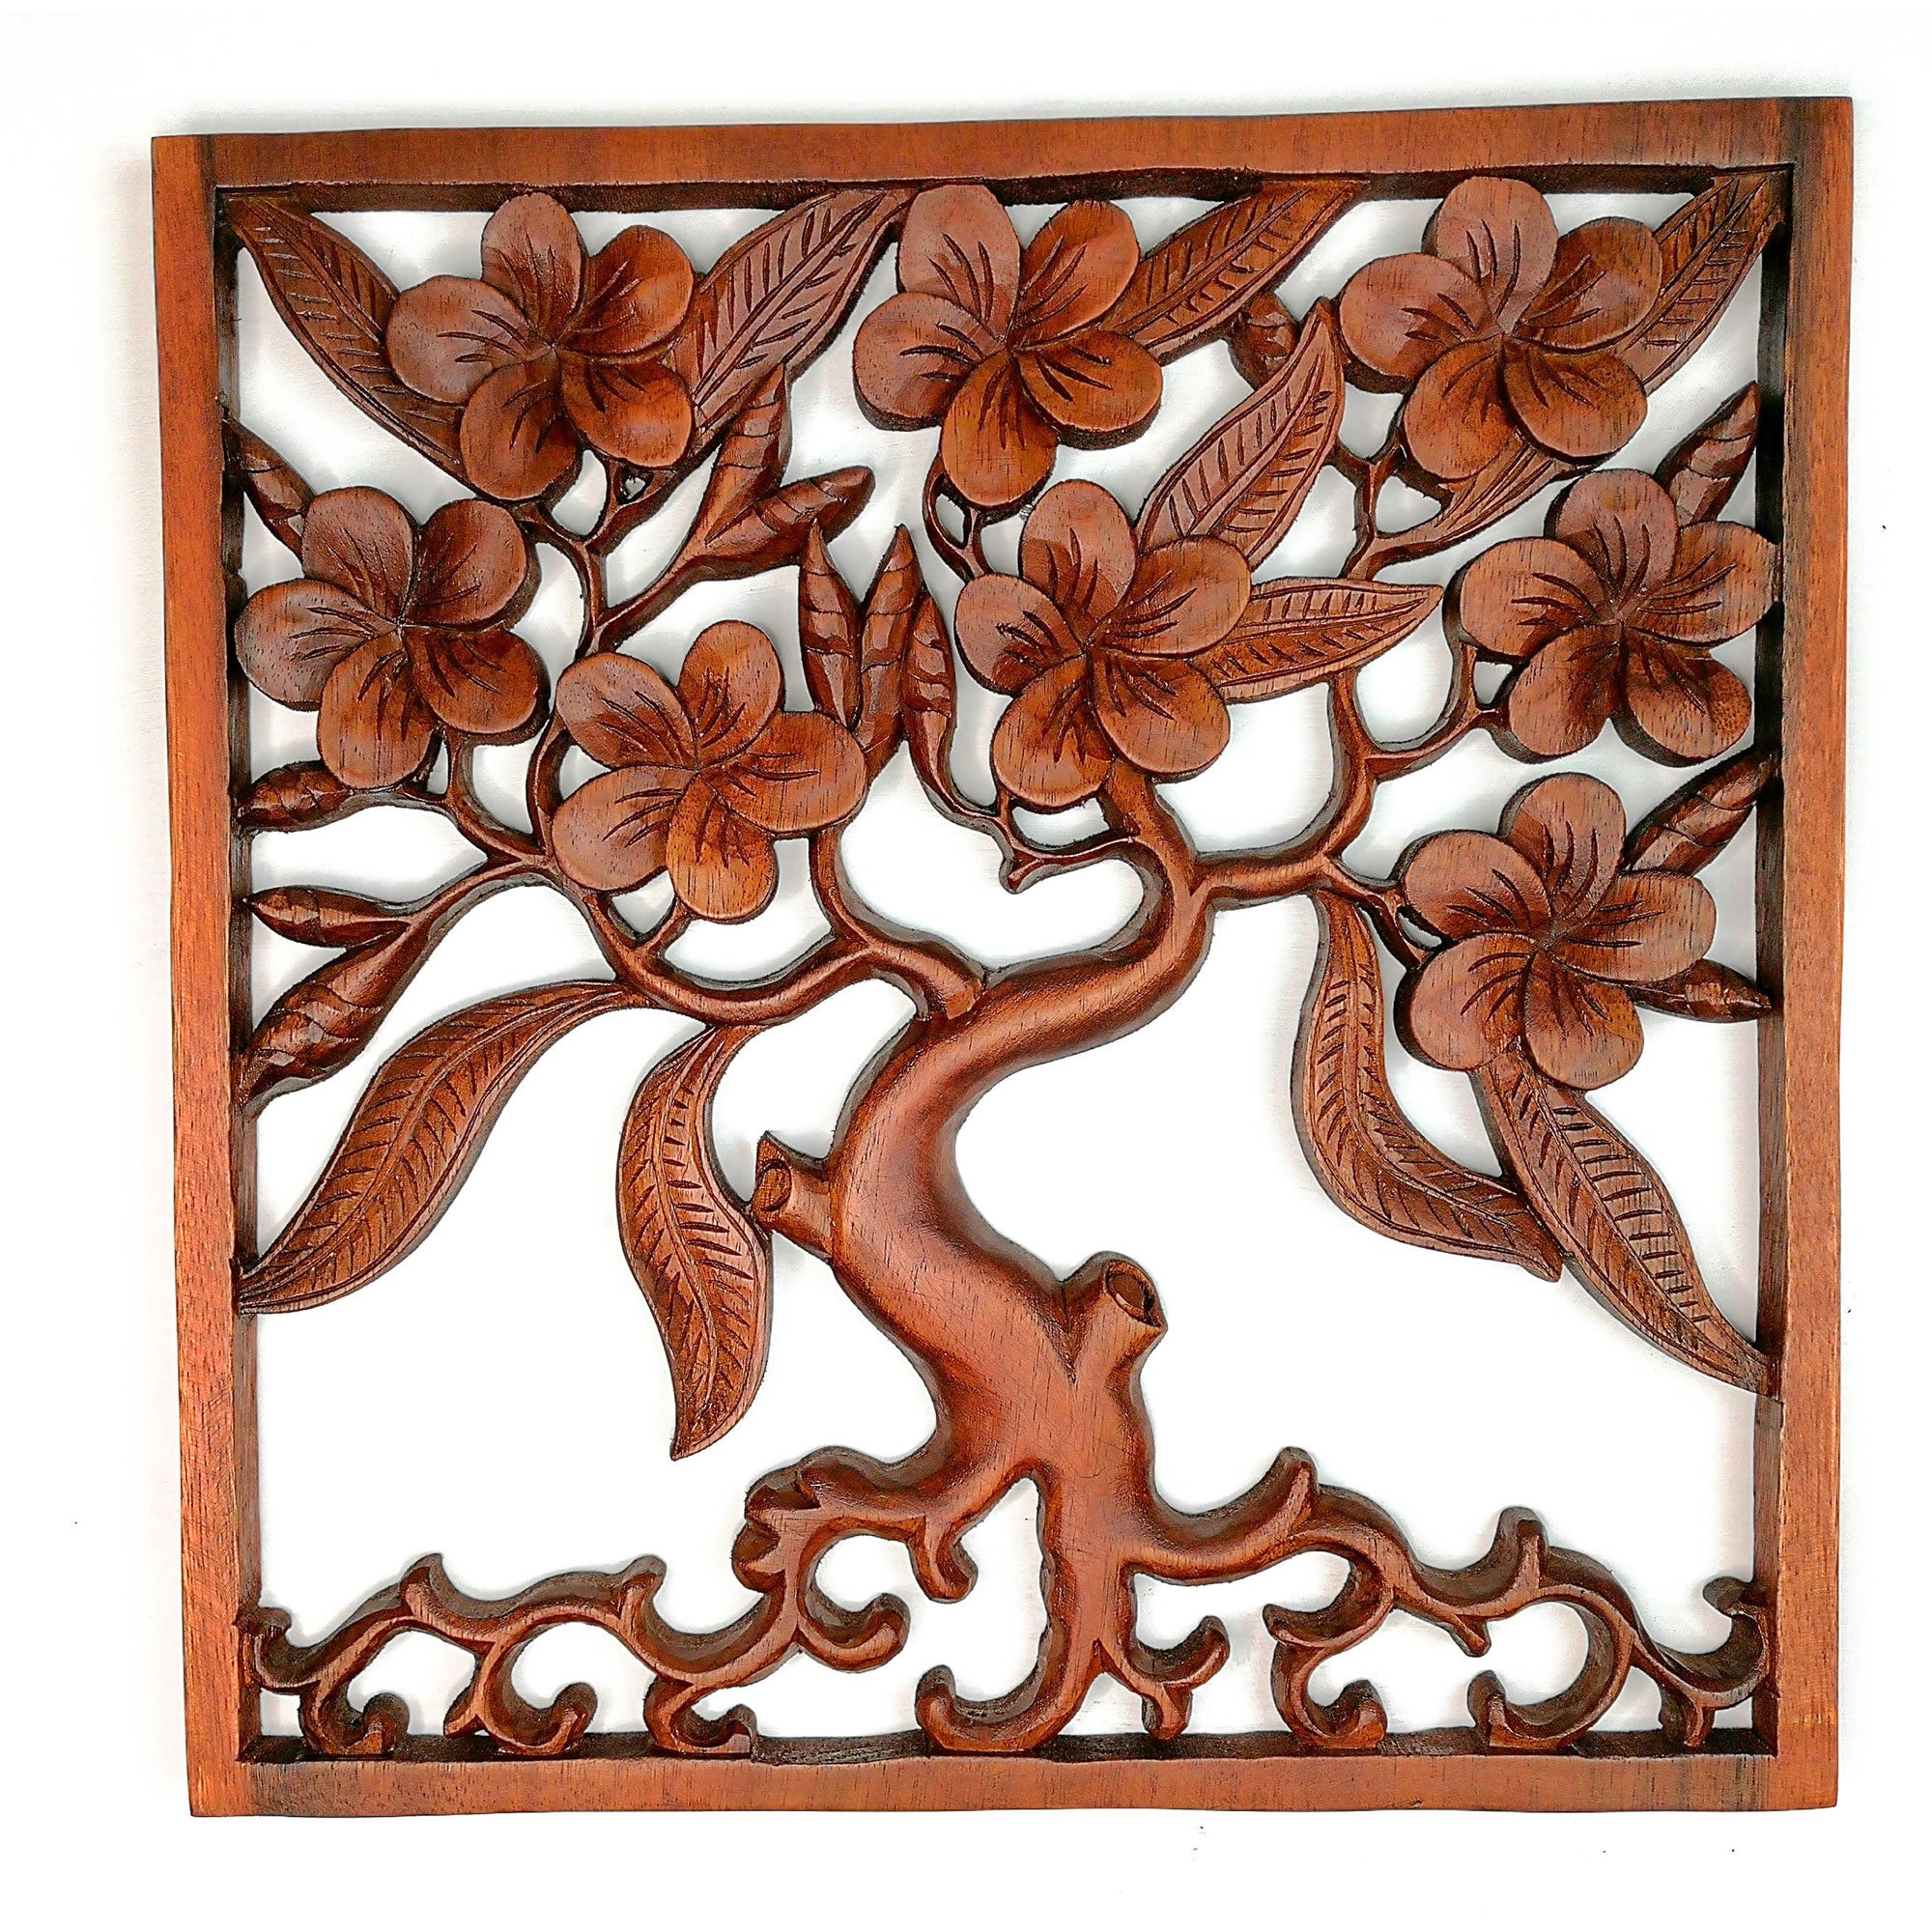 Hand Carved Wooden Decorative Panel Art Sculpture Tree of Hope Wealth